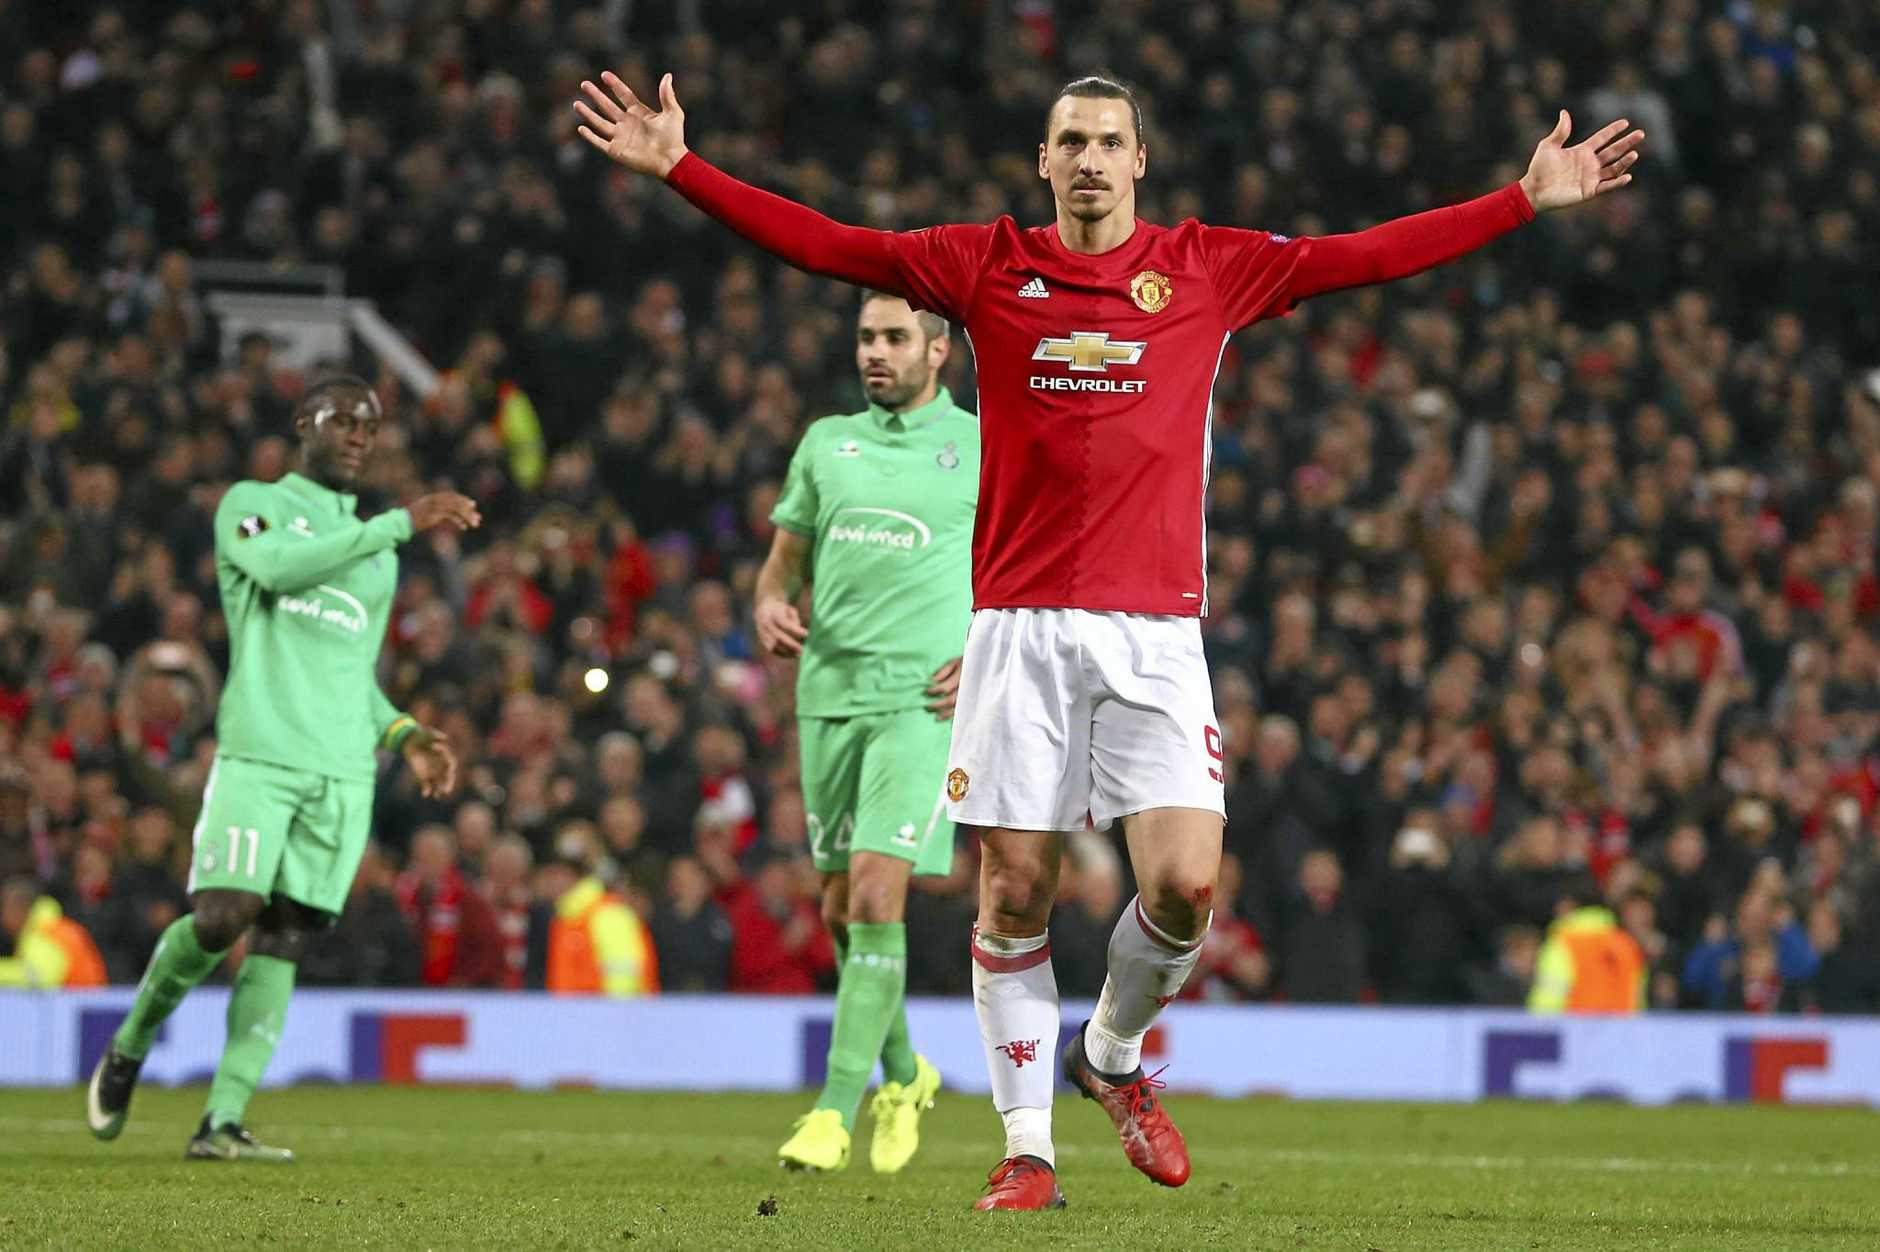 Manchester United's Zlatan Ibrahimovic celebrates after scoring during the Europa League round of 32 first leg match against Saint-Etienne at Old Trafford.